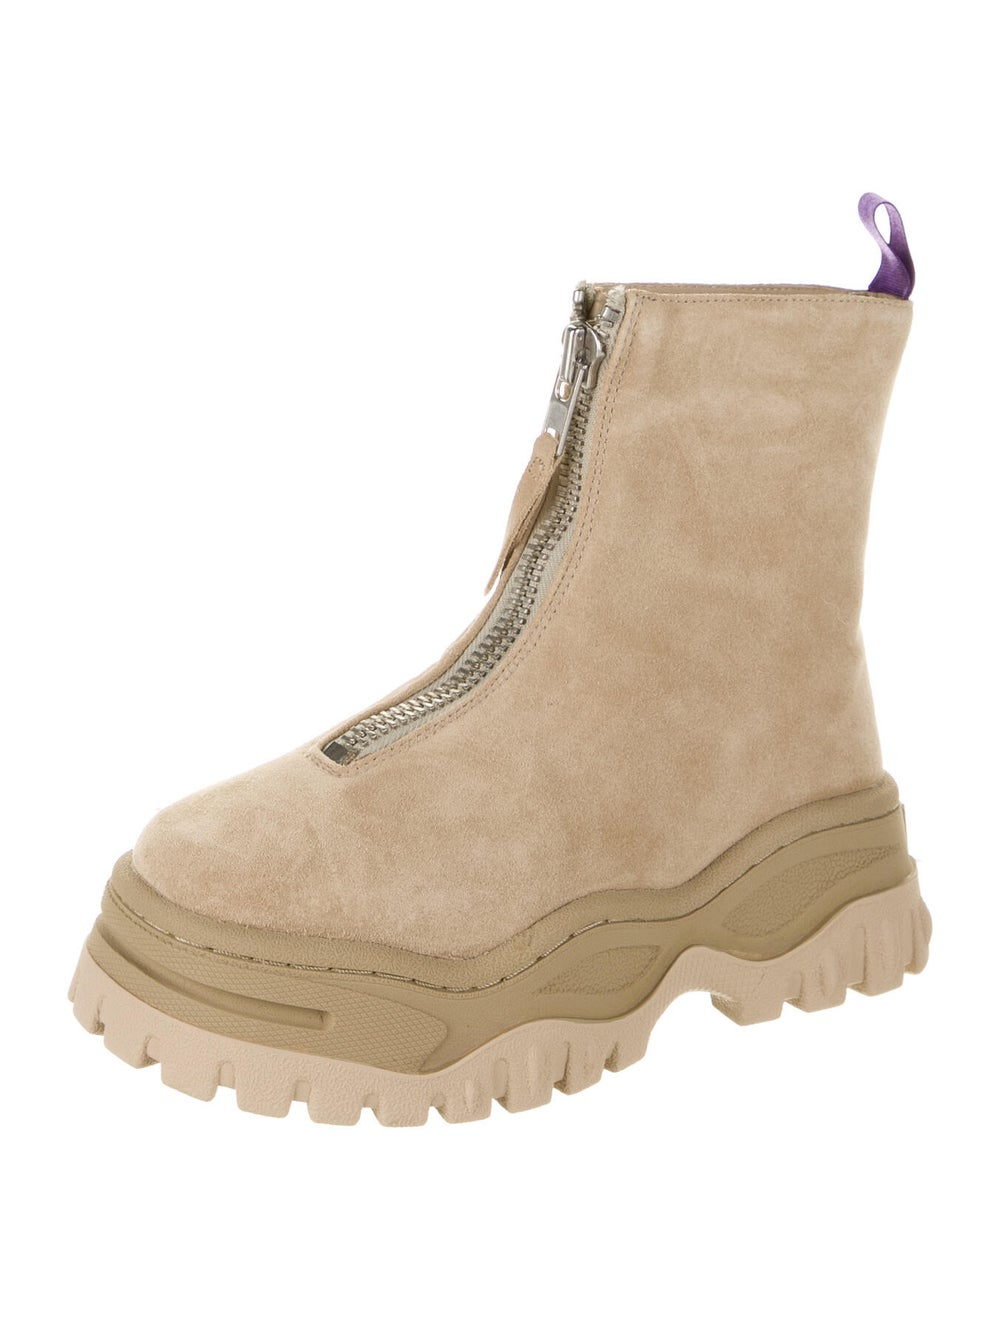 Eytys Suede Boots - image 2